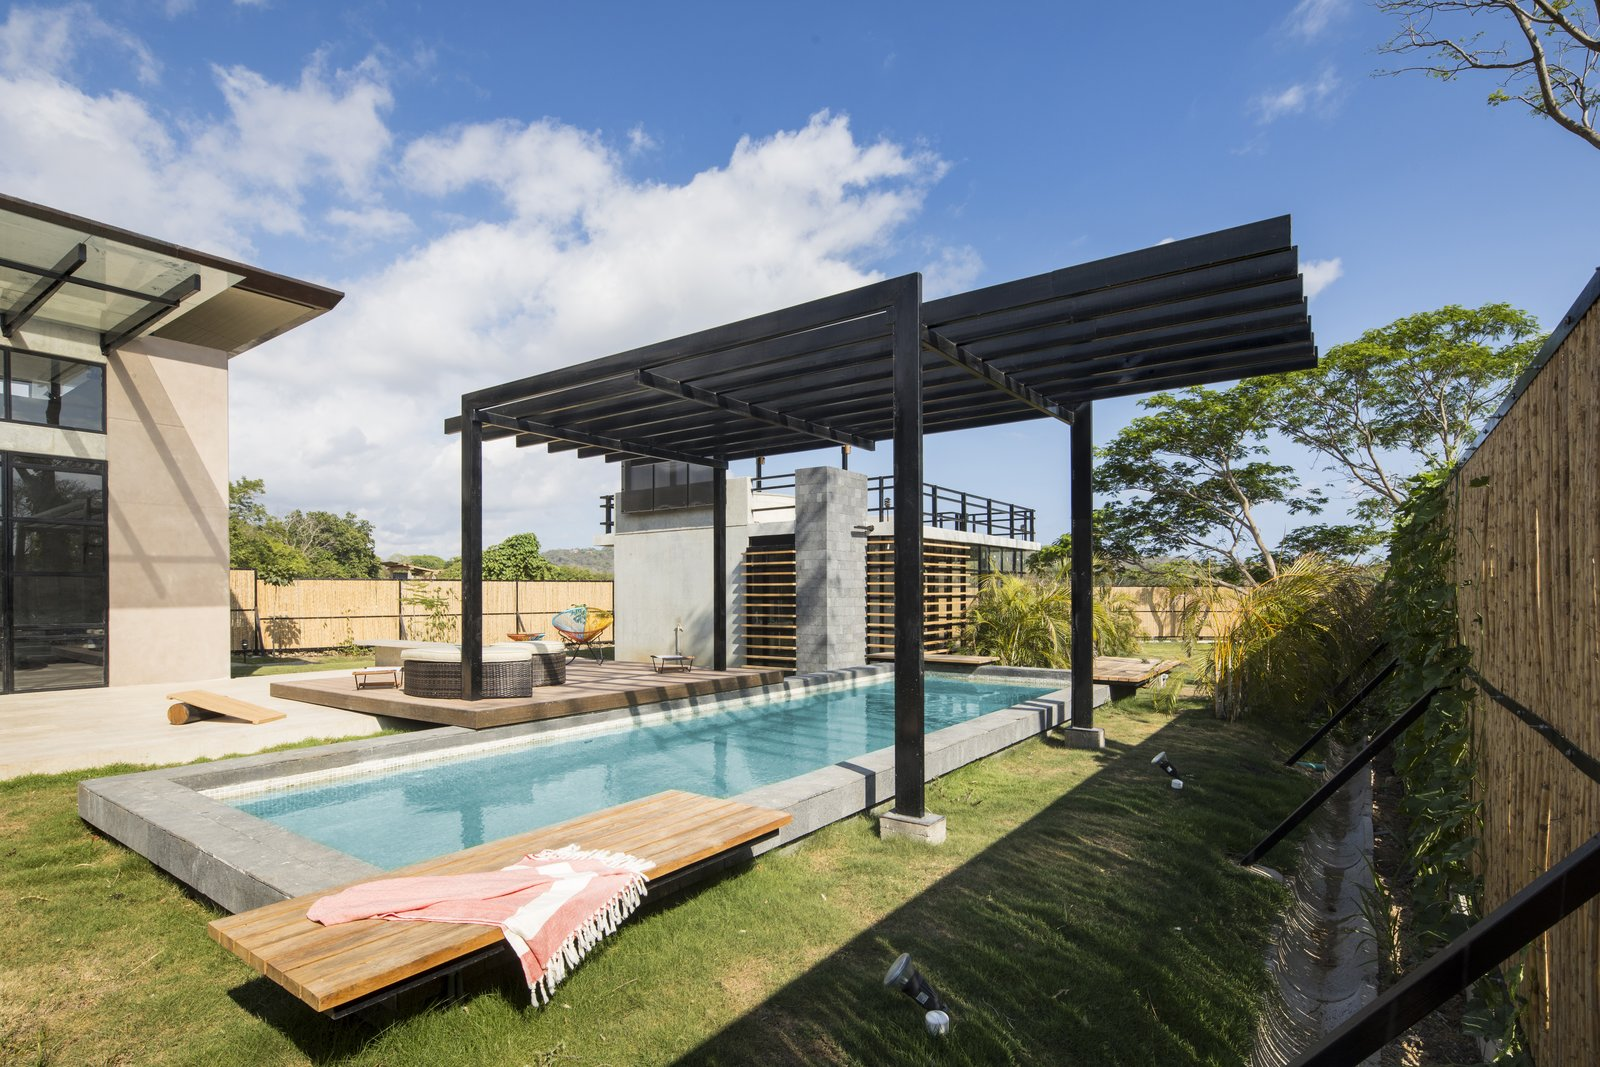 A pergola keeps swimmers cool on hot days.